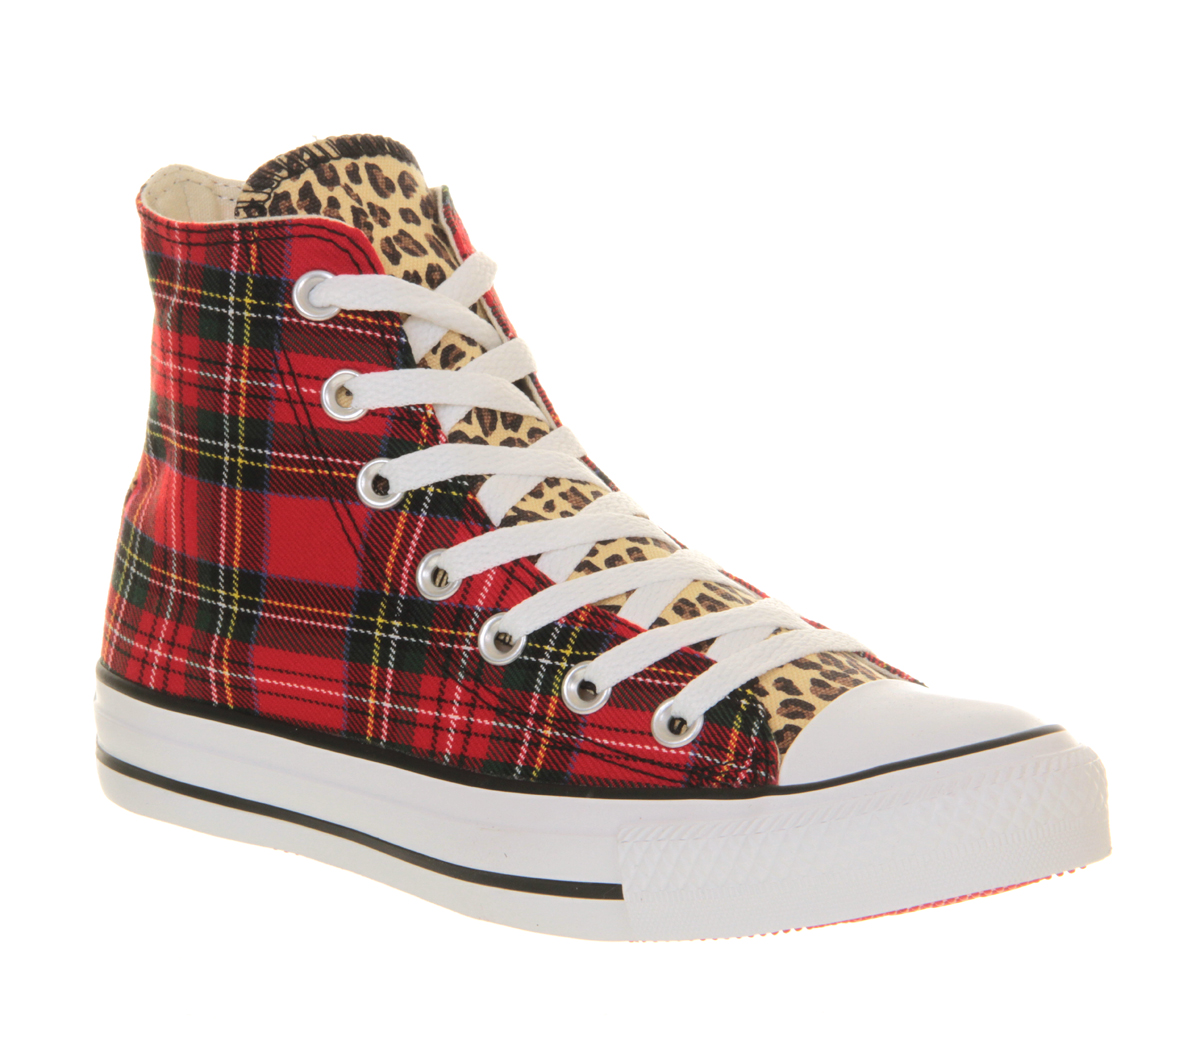 Mens-Converse-Converse-All-Star-Hi-TARTAN-LEOPARD-STUDS-EXCLUSIVE-Trainers-Shoes